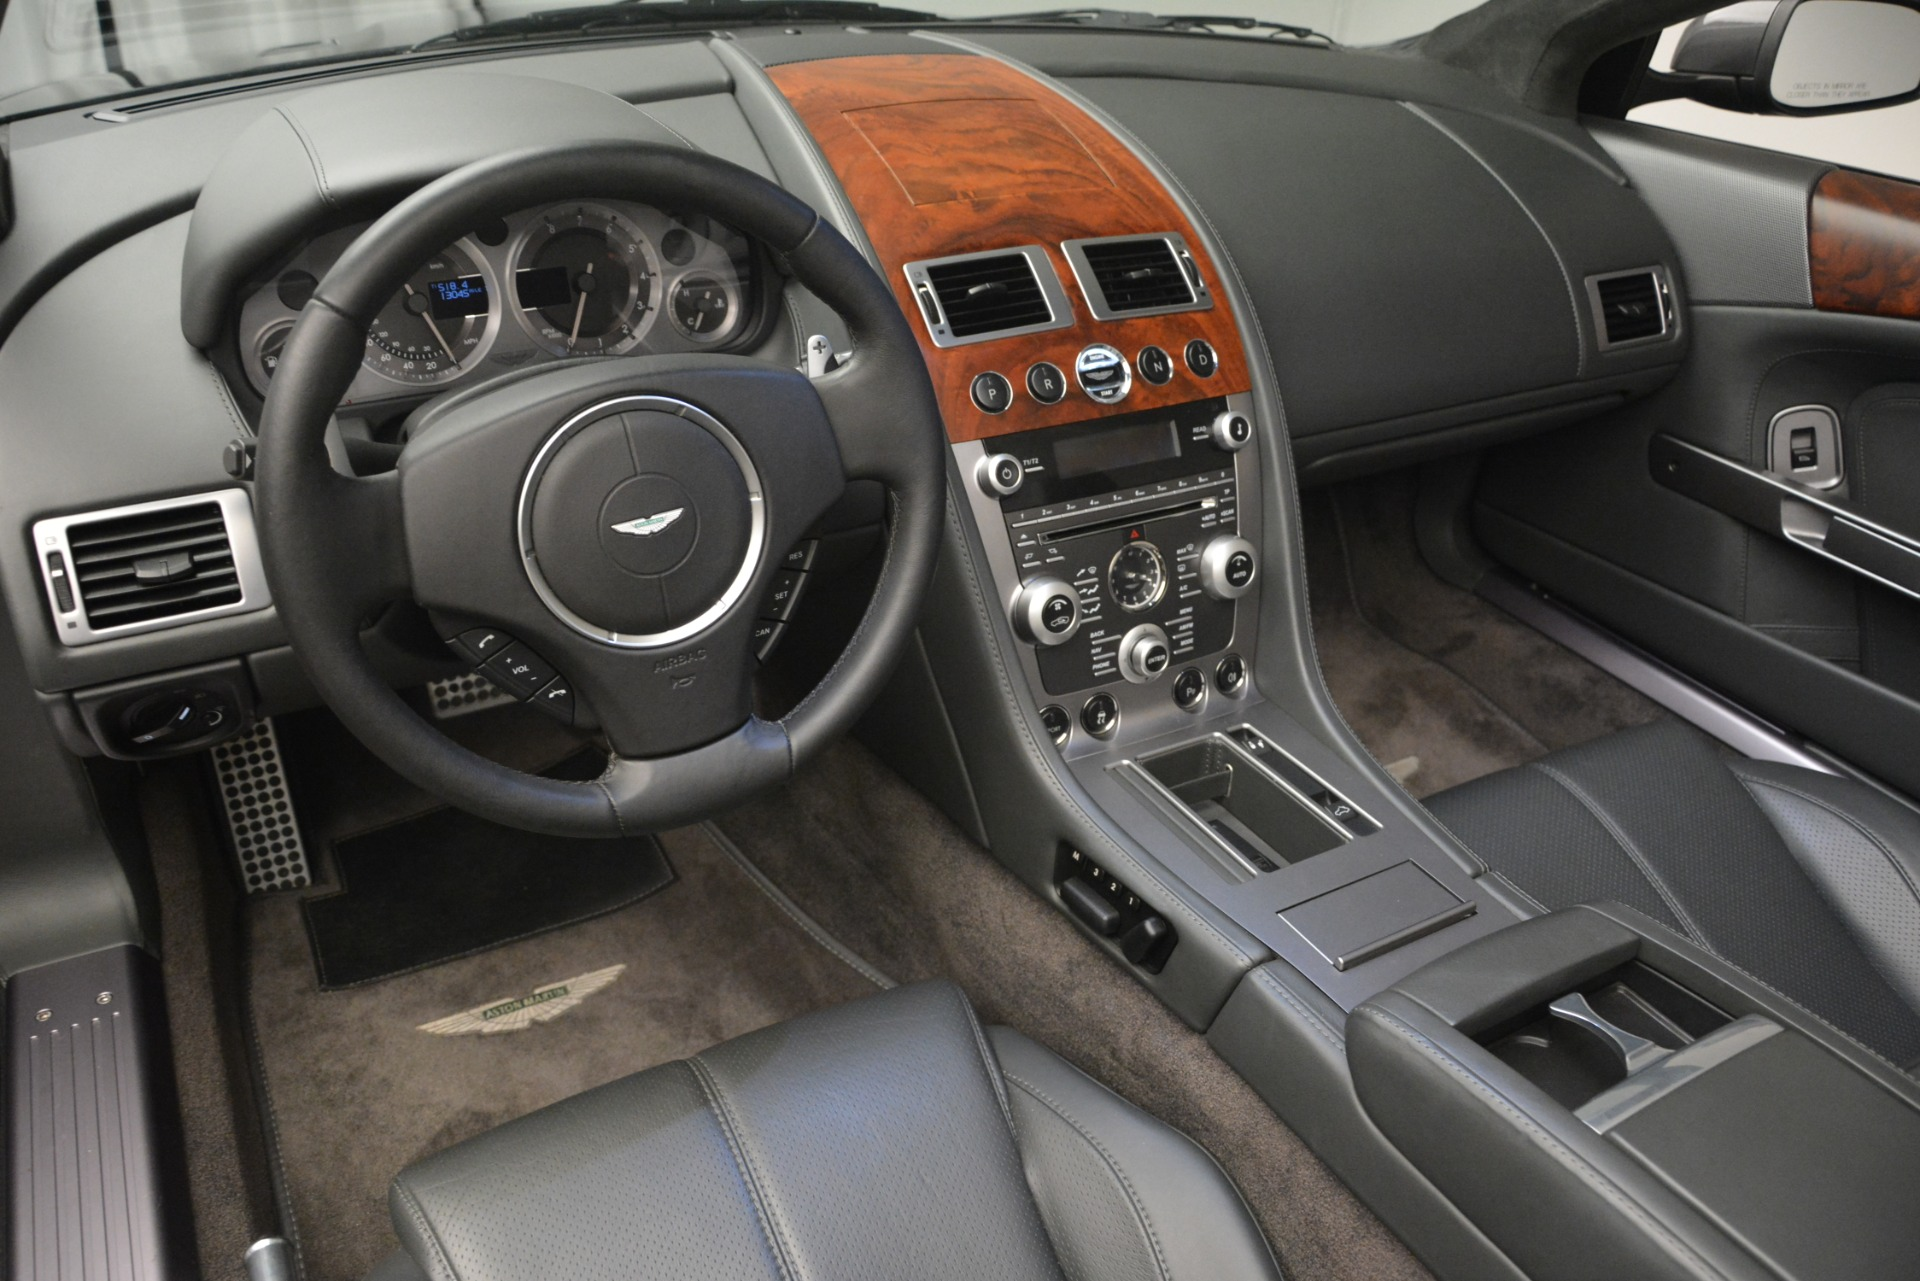 Used 2009 Aston Martin DB9 Convertible For Sale In Greenwich, CT 2930_p21